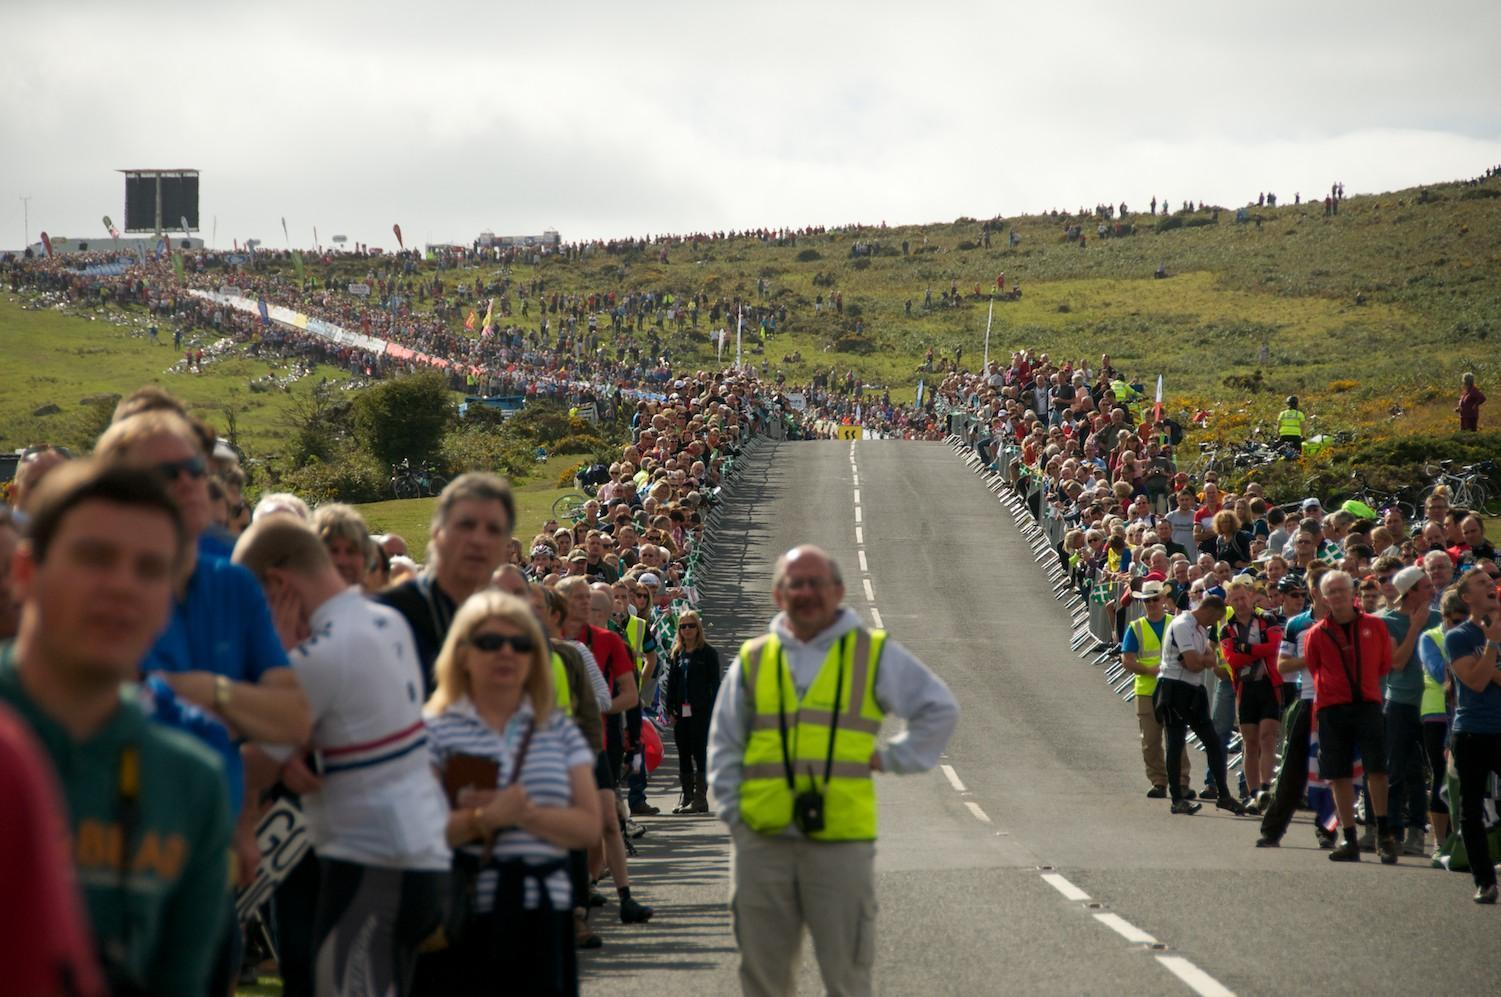 tour of britain Haytor King of the Mountains finish 2013